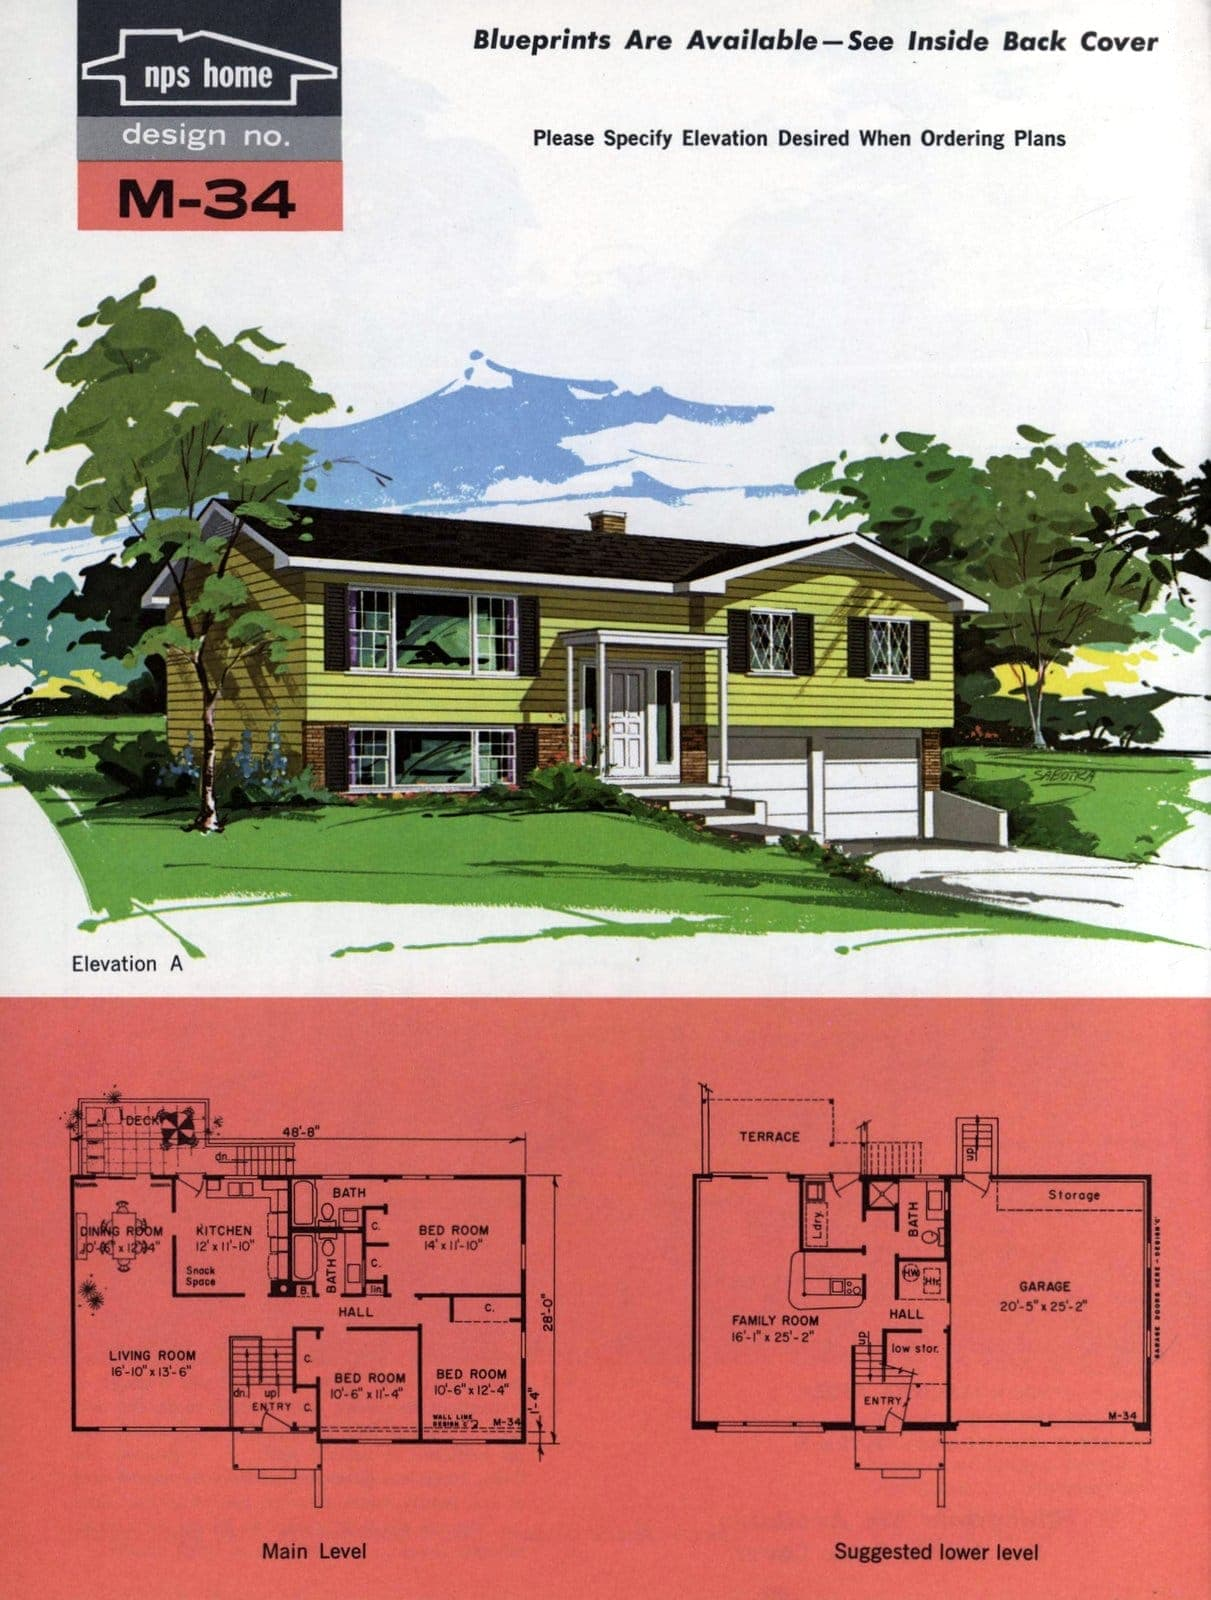 Vintage midcentury home plans from 1963 (6)